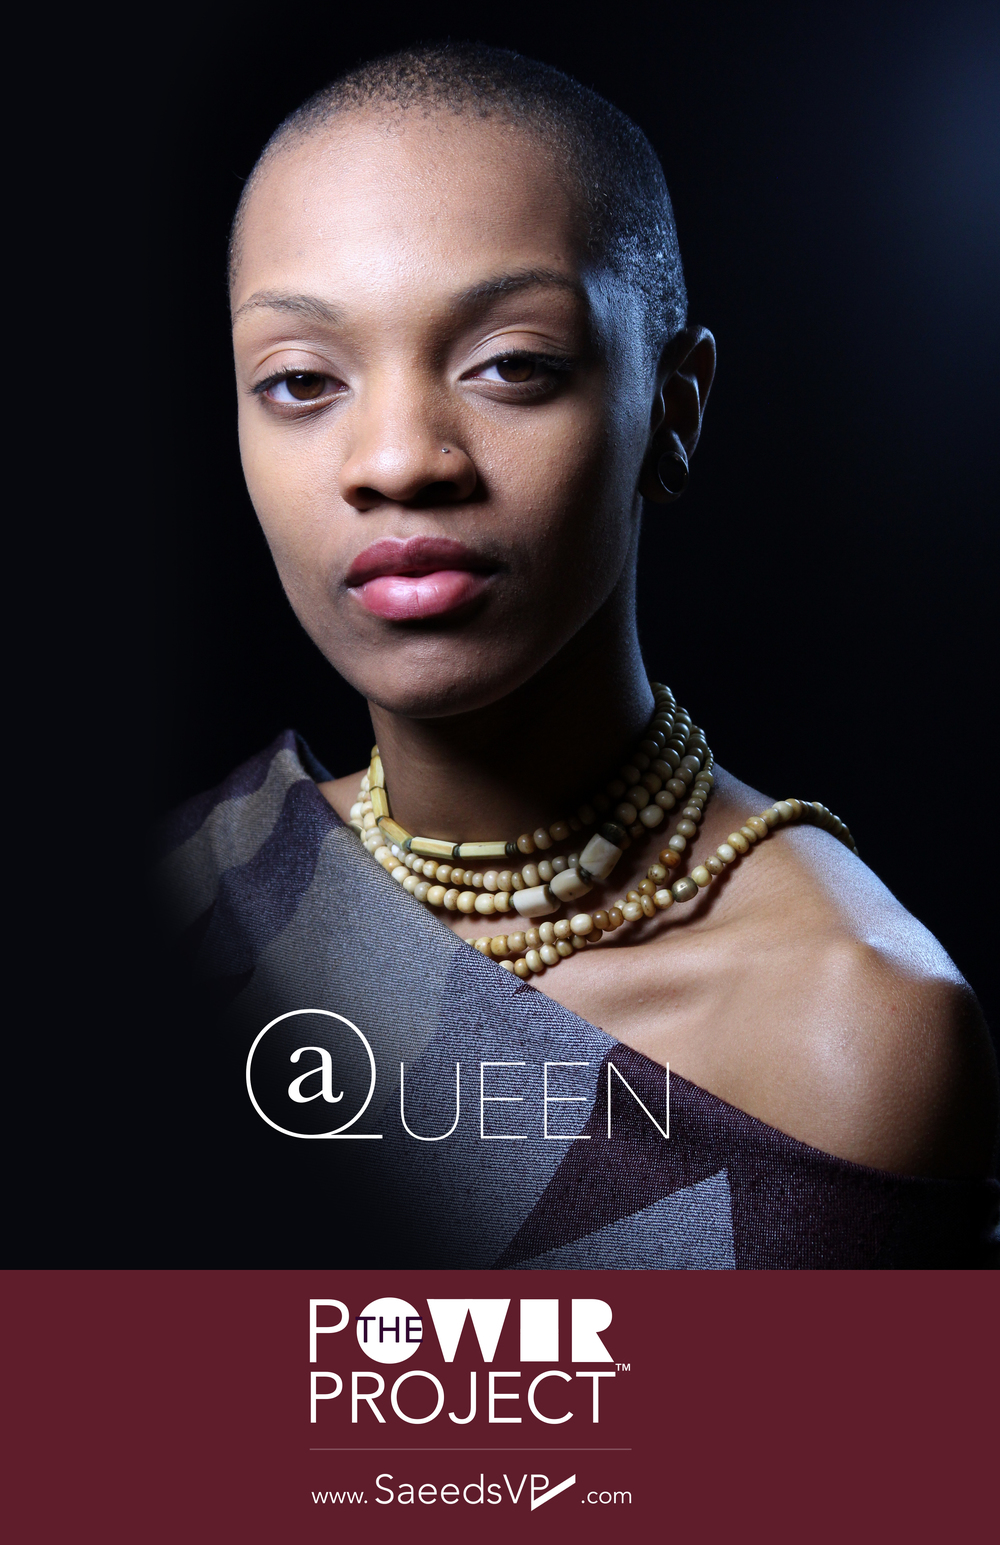 """What Queens do you know?  Join the conversation as we discover Powerful Women and acknowledge the ones we know.   The woman above """"Joie Kathos"""" has been acknowledged for her Queen like attributes.   Queen's are supreme by lineage and have the authority to address pressing issues.    Share this image with a woman you think is applying her authority to make the world a better place using the hashtag  #icTheQueeninU"""